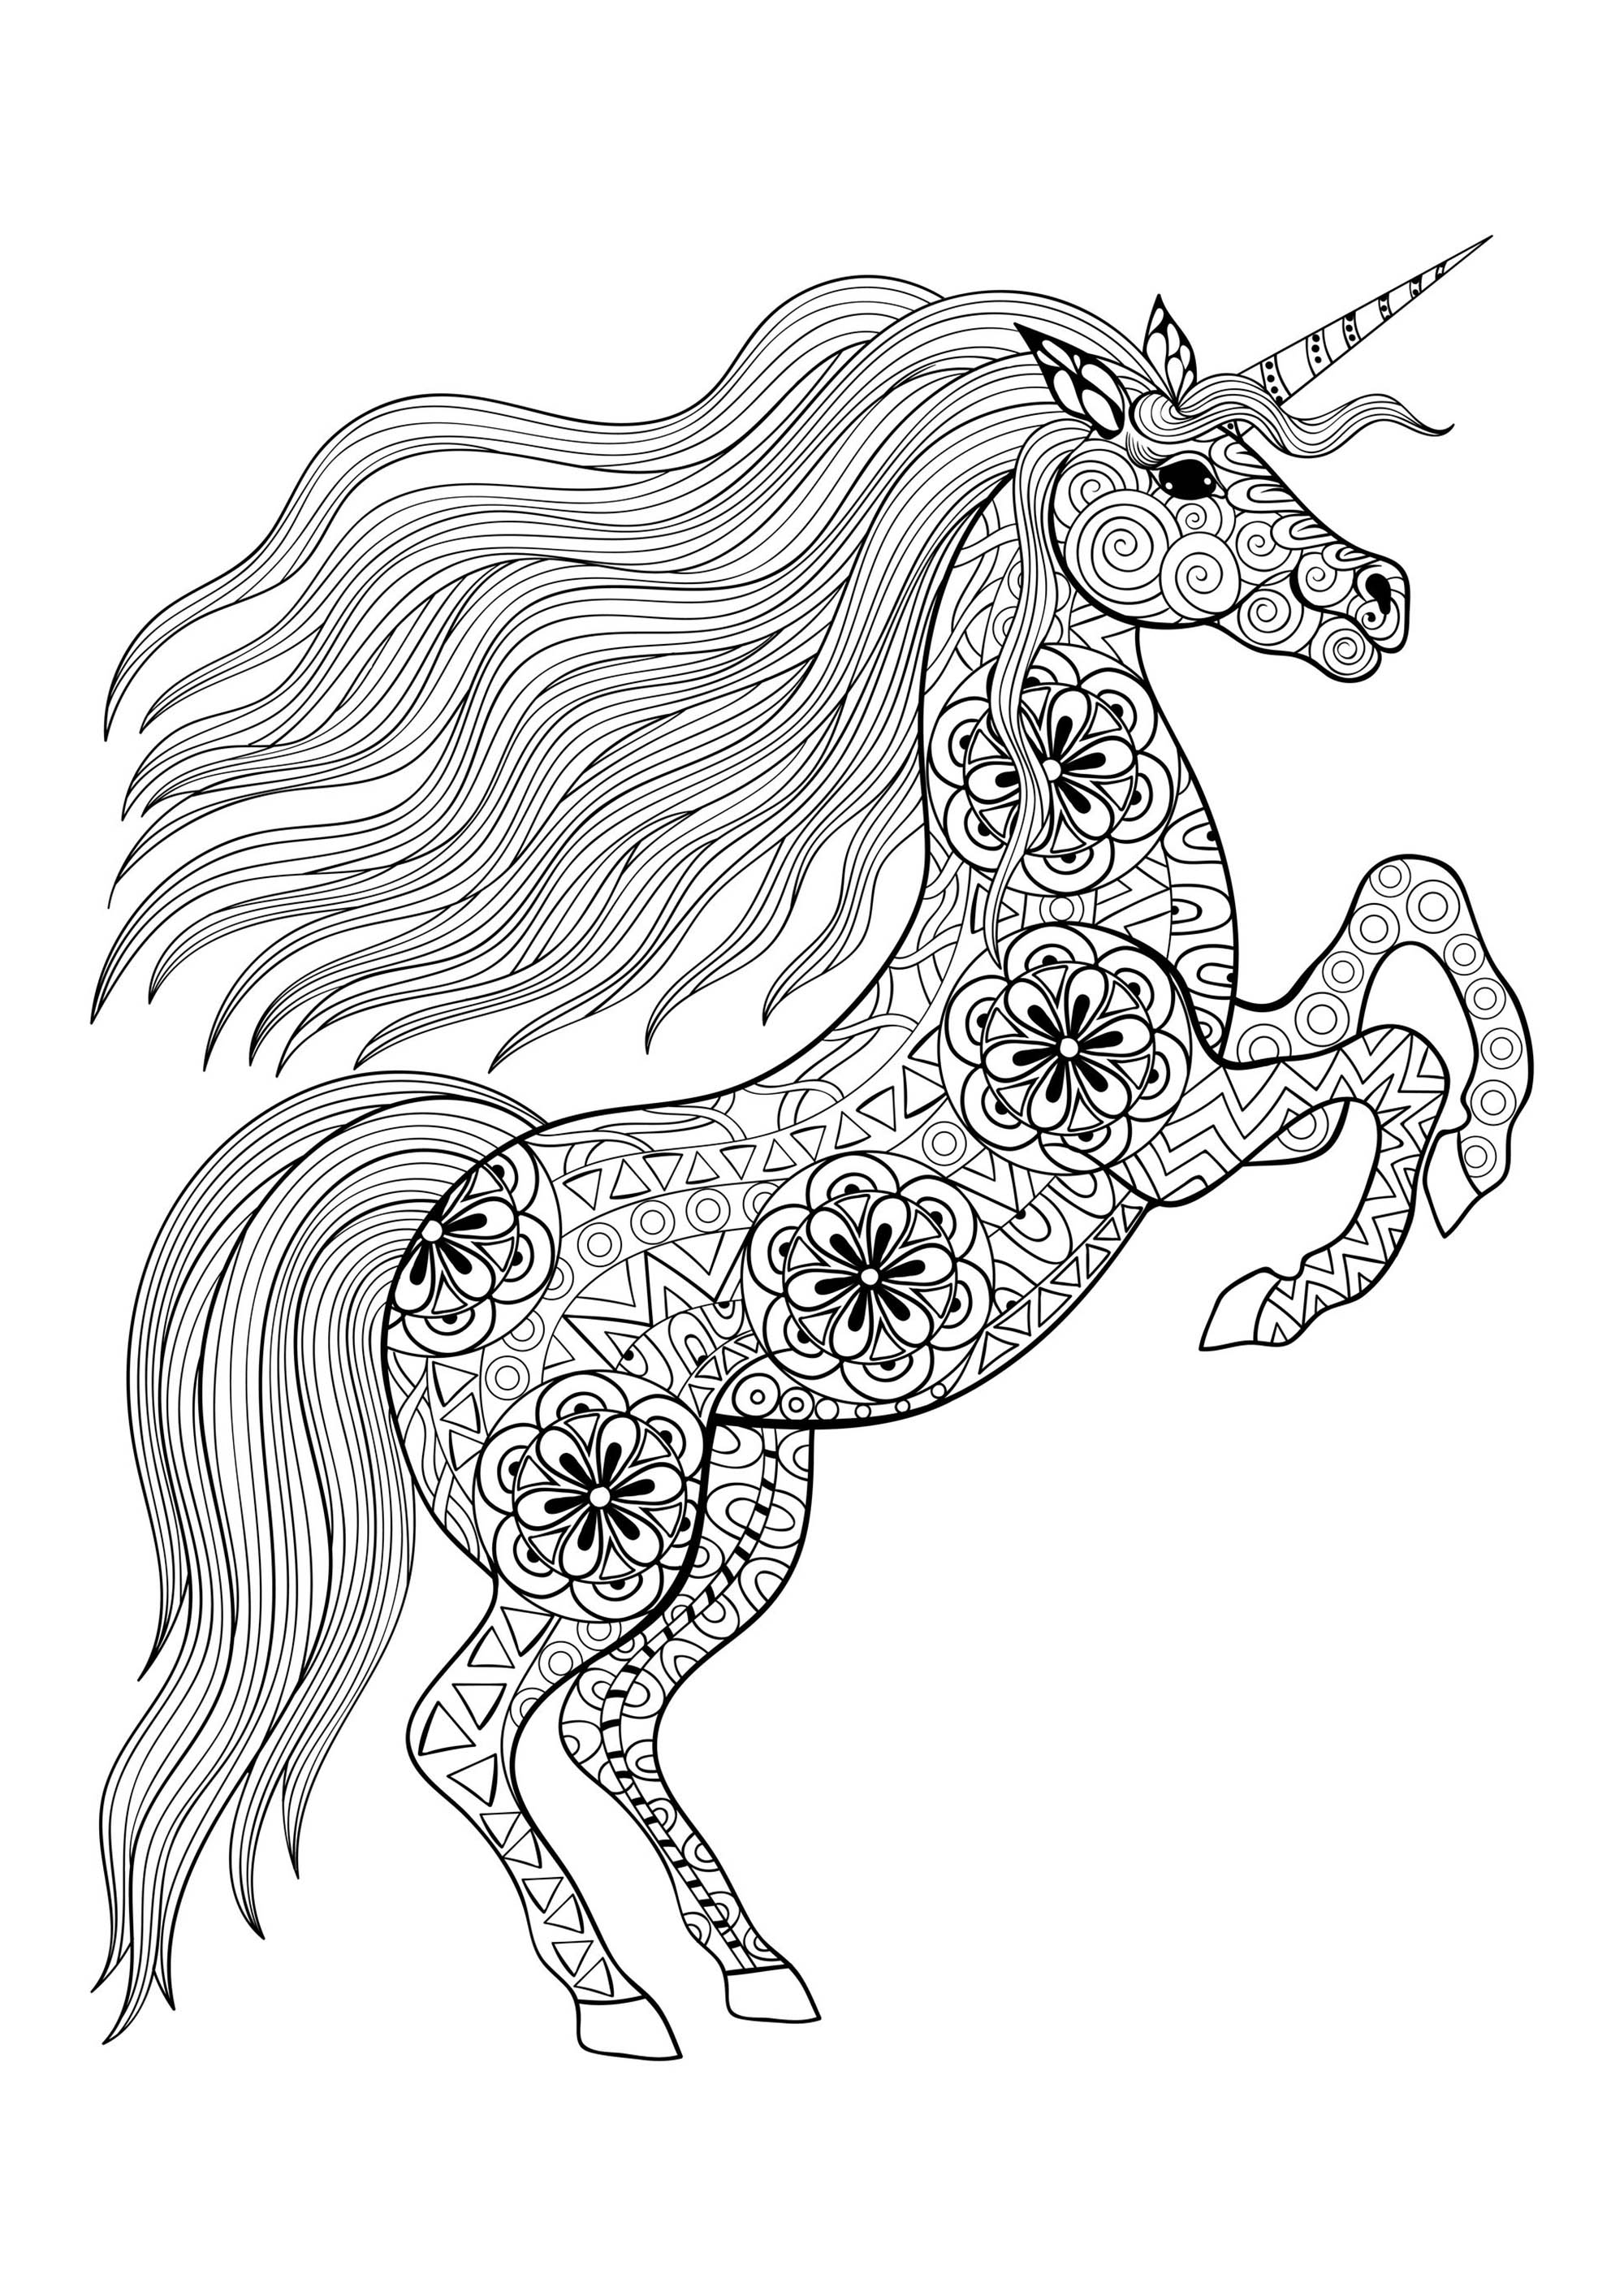 Free Unicorns coloring page to download